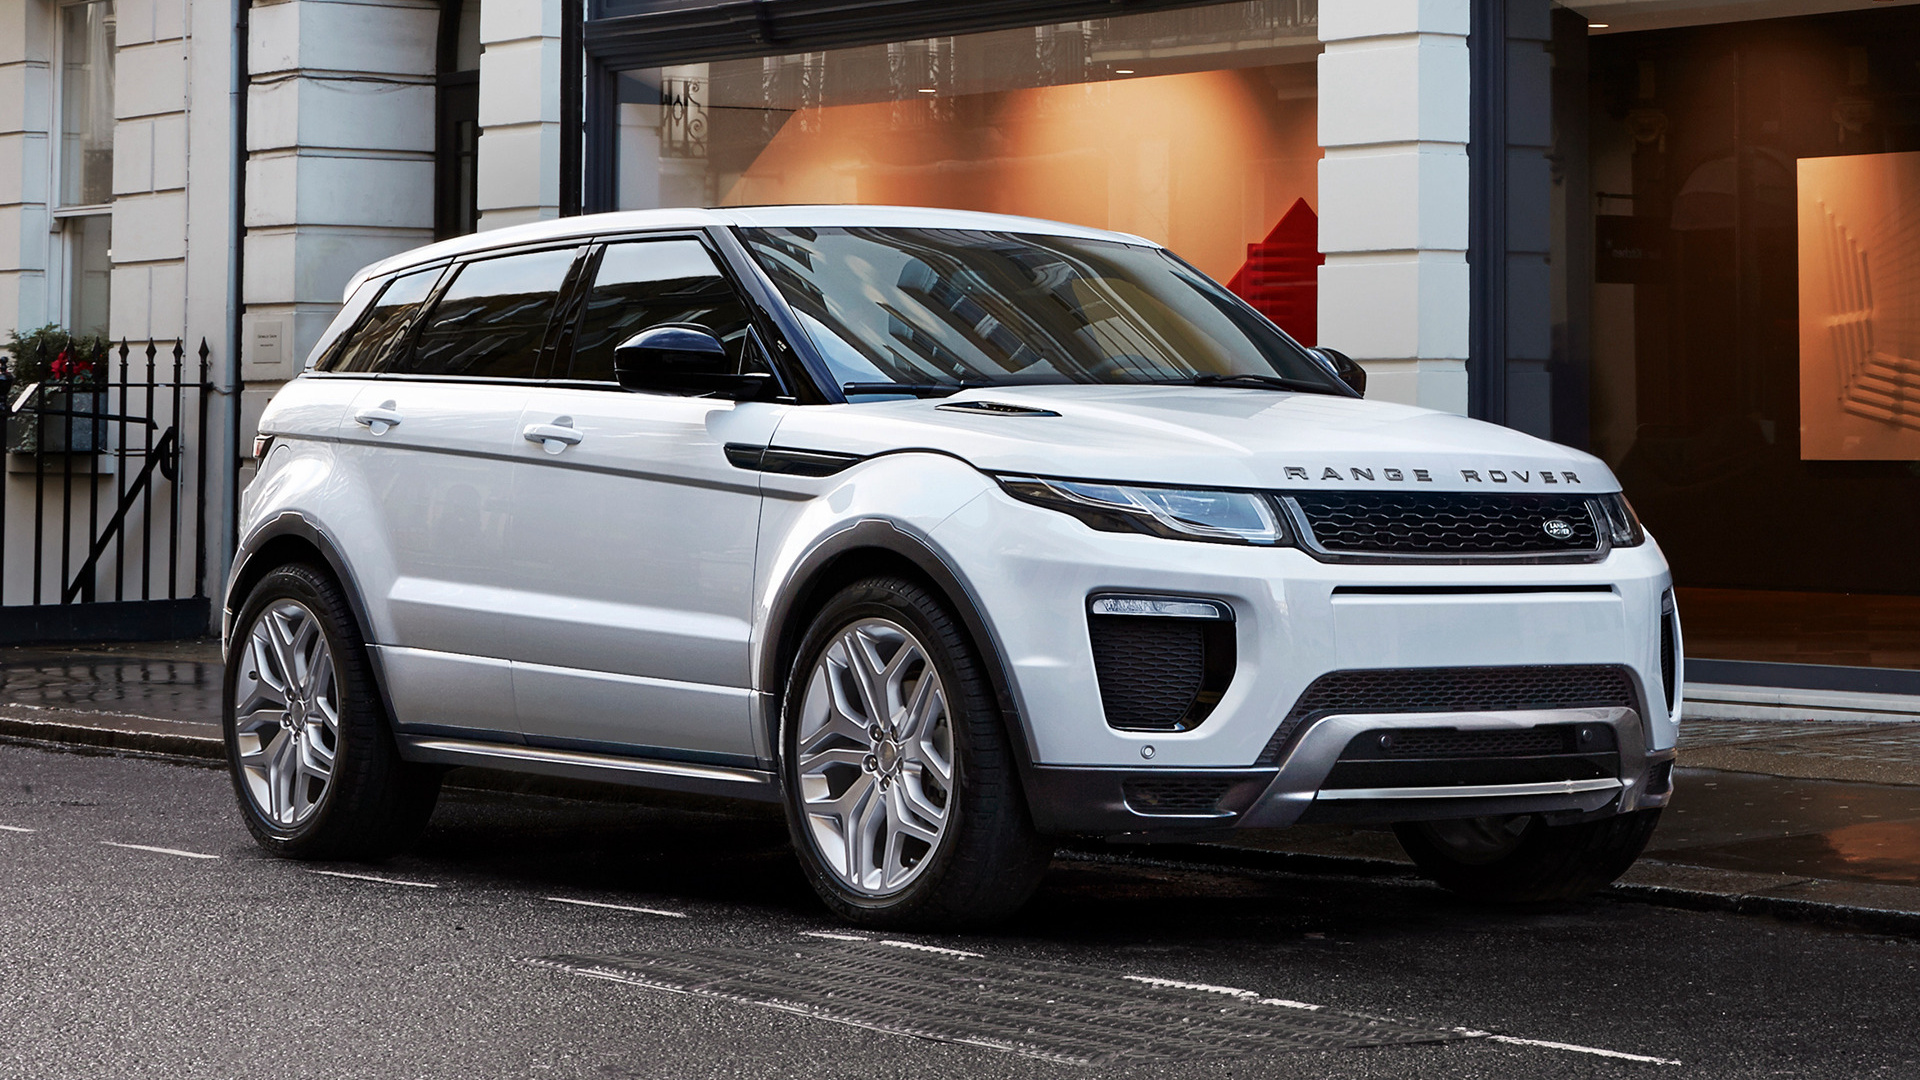 range rover evoque hse dynamic 2015 wallpapers and hd. Black Bedroom Furniture Sets. Home Design Ideas